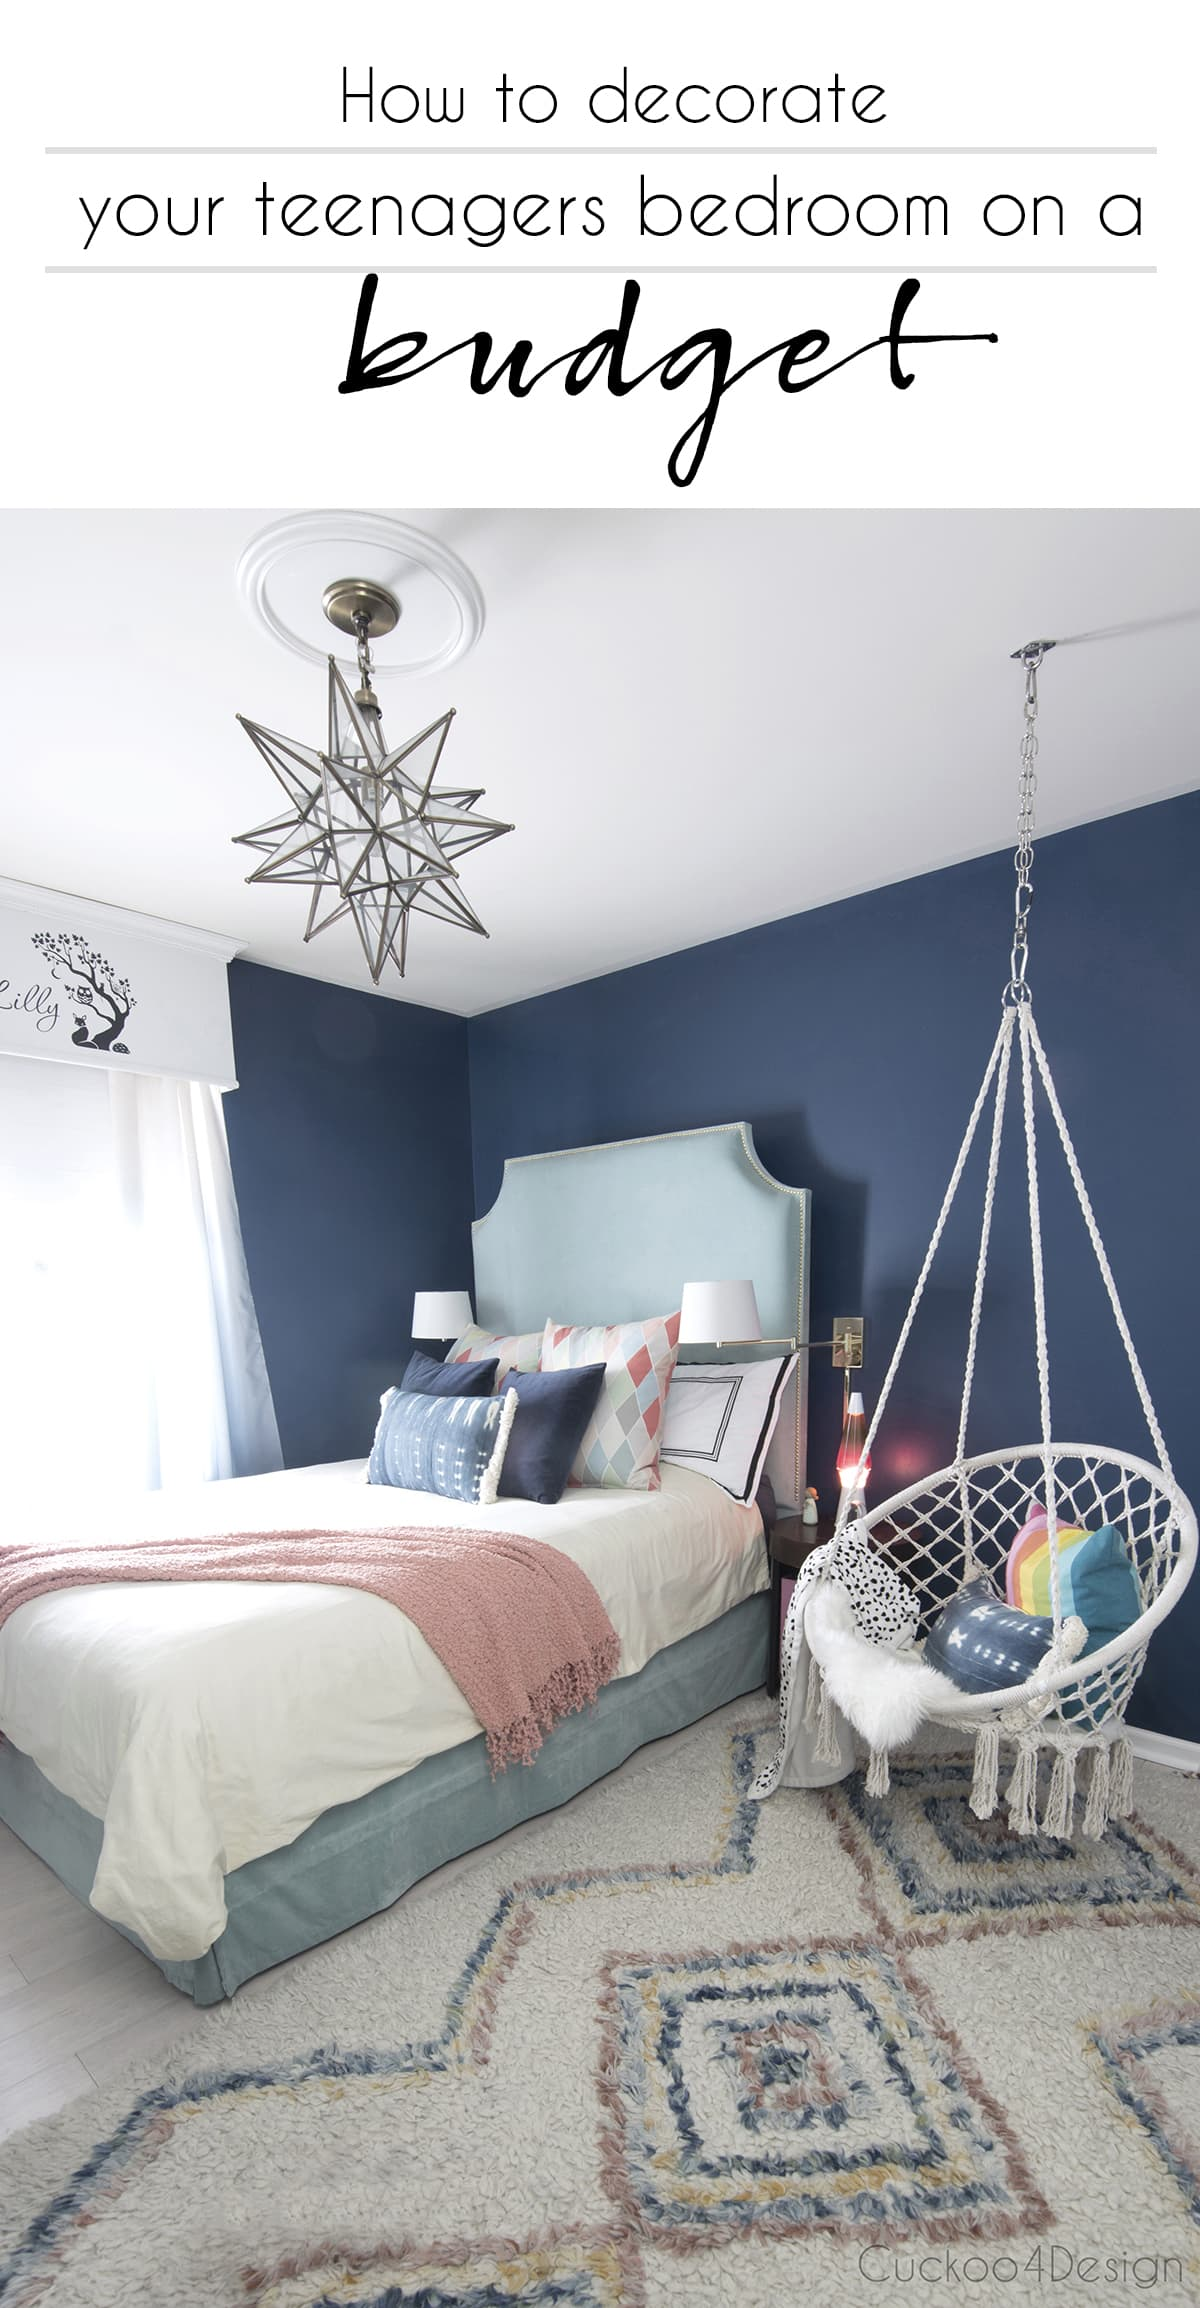 Teenage Bedroom Designs On A Budget how to decorate your teenagers bedroom on a budget | cuckoo4design